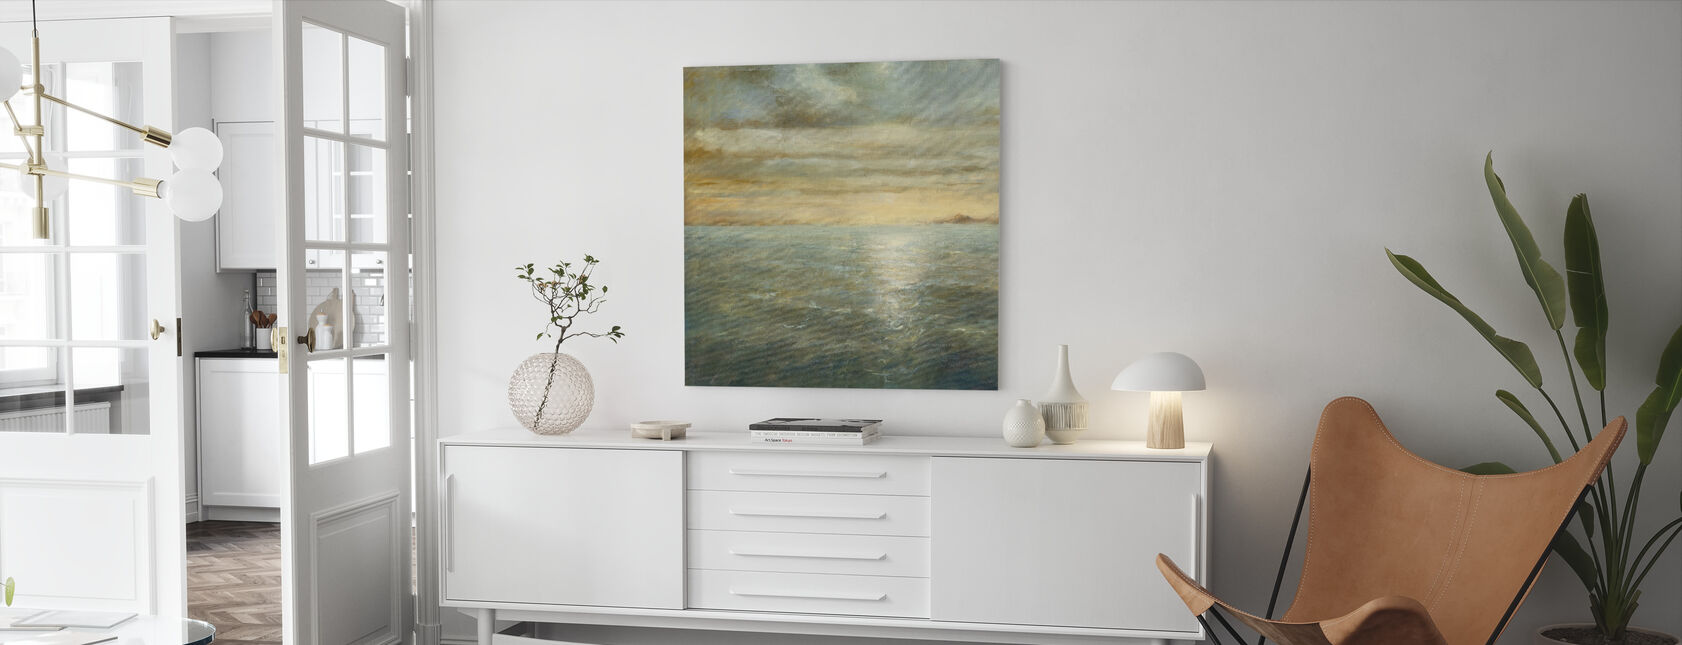 Serene Sea - Canvas print - Living Room